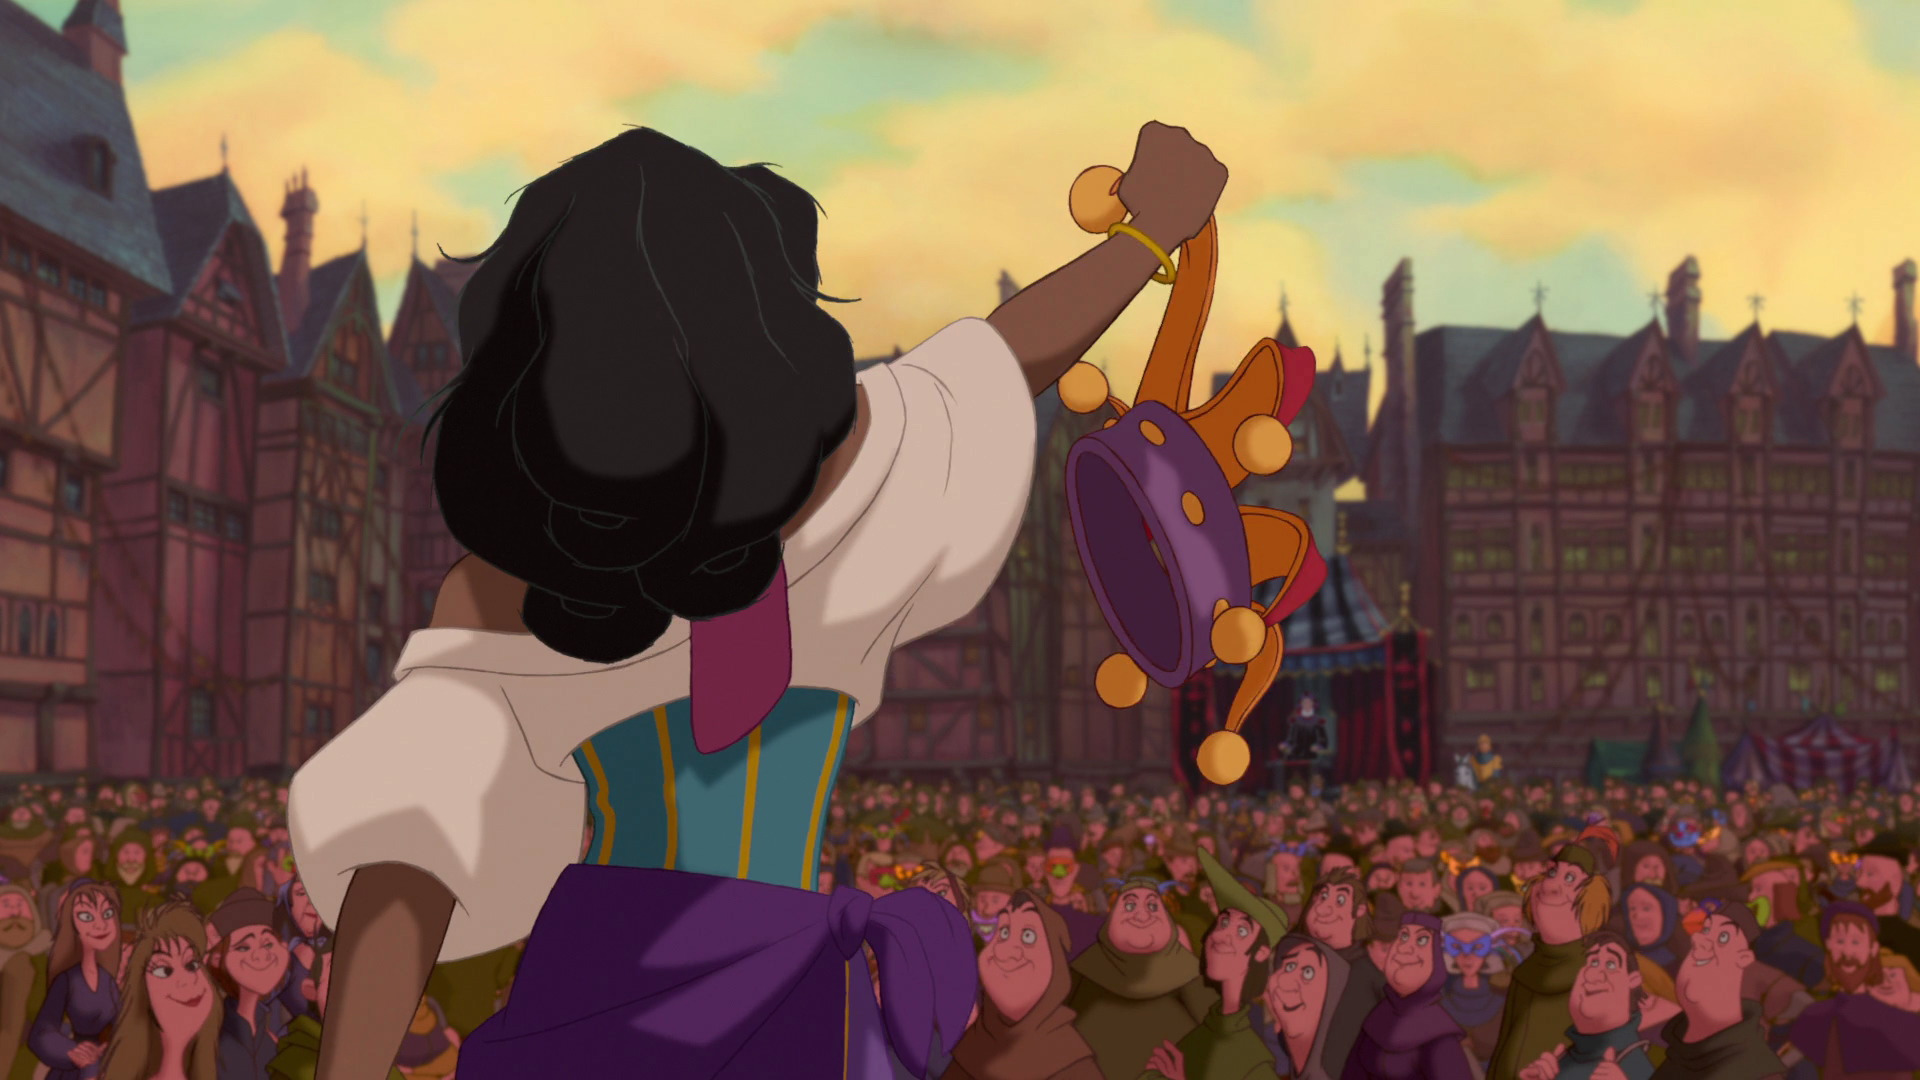 the view of victor hugo on torture Esmeralda is the deuteragonist of disney  sent after her and ultimately disappears from view by flipping  quasimodo • esmeralda • phoebus • victor, hugo,.